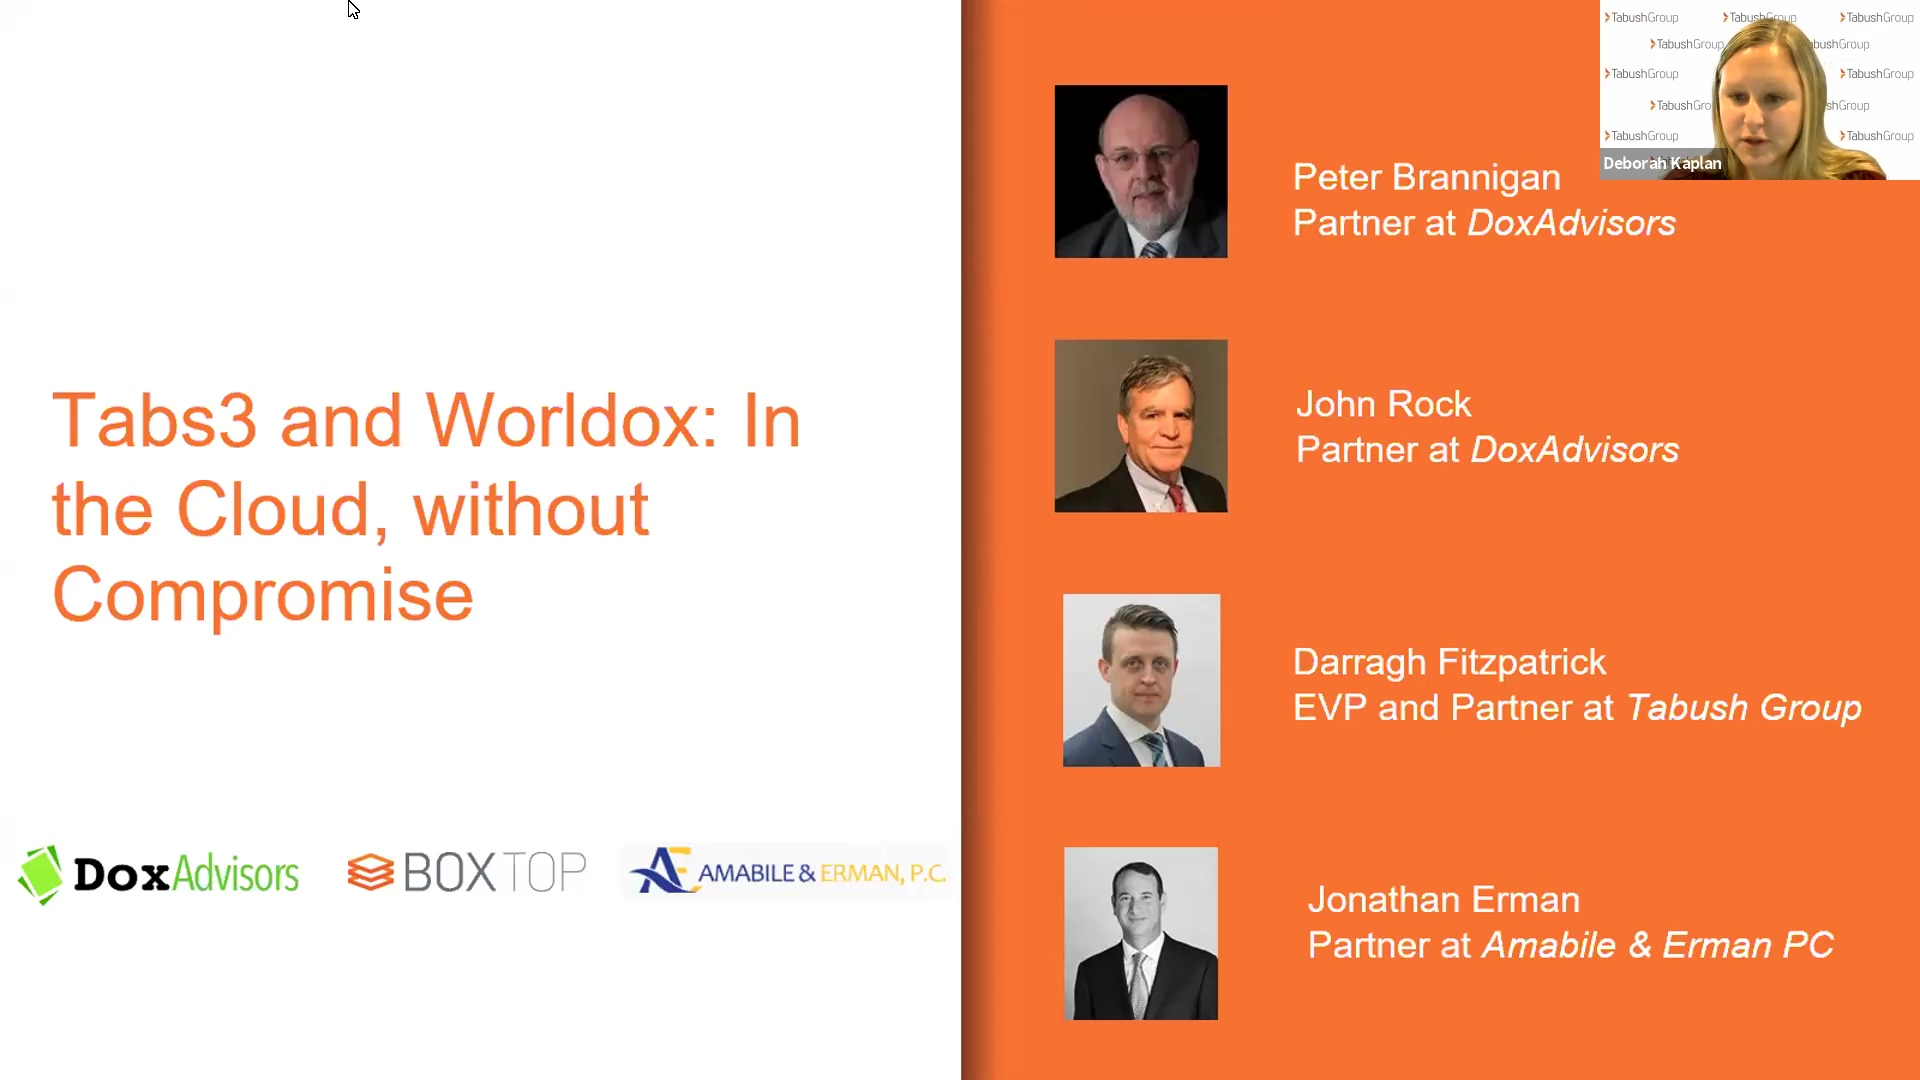 Replay: Tabs3 and Worldox: In the Cloud, without Compromise